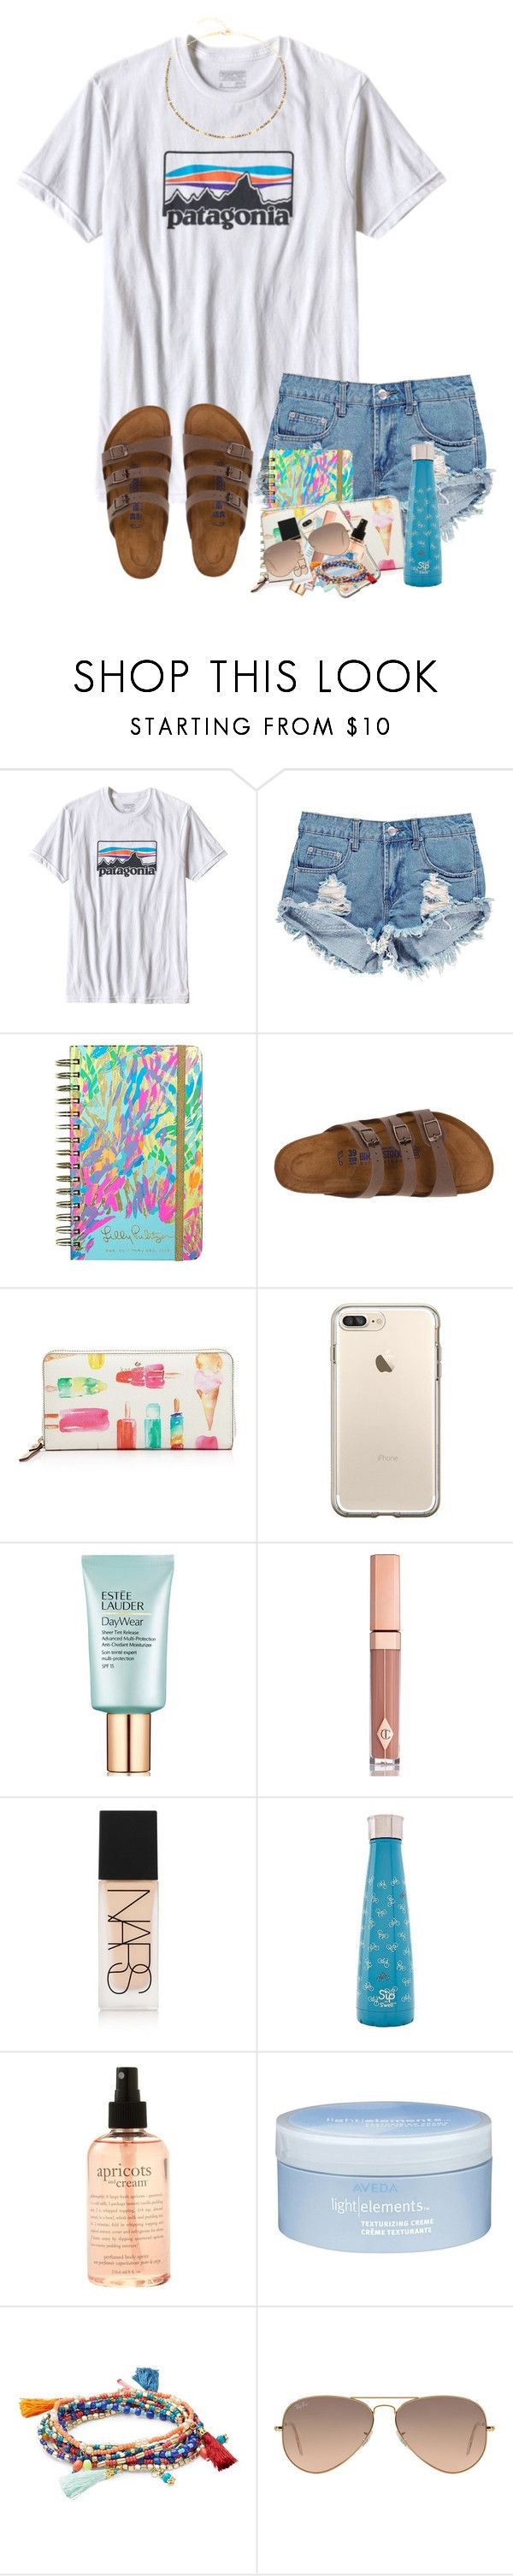 """""""Watching old Hannah Montana eps"""" by zoejm ❤ liked on Polyvore featuring Patagonia, Boohoo, Lilly Pulitzer, Birkenstock, Kate Spade, Estée Lauder, Charlotte Tilbury, NARS Cosmetics, S'well and philosophy"""